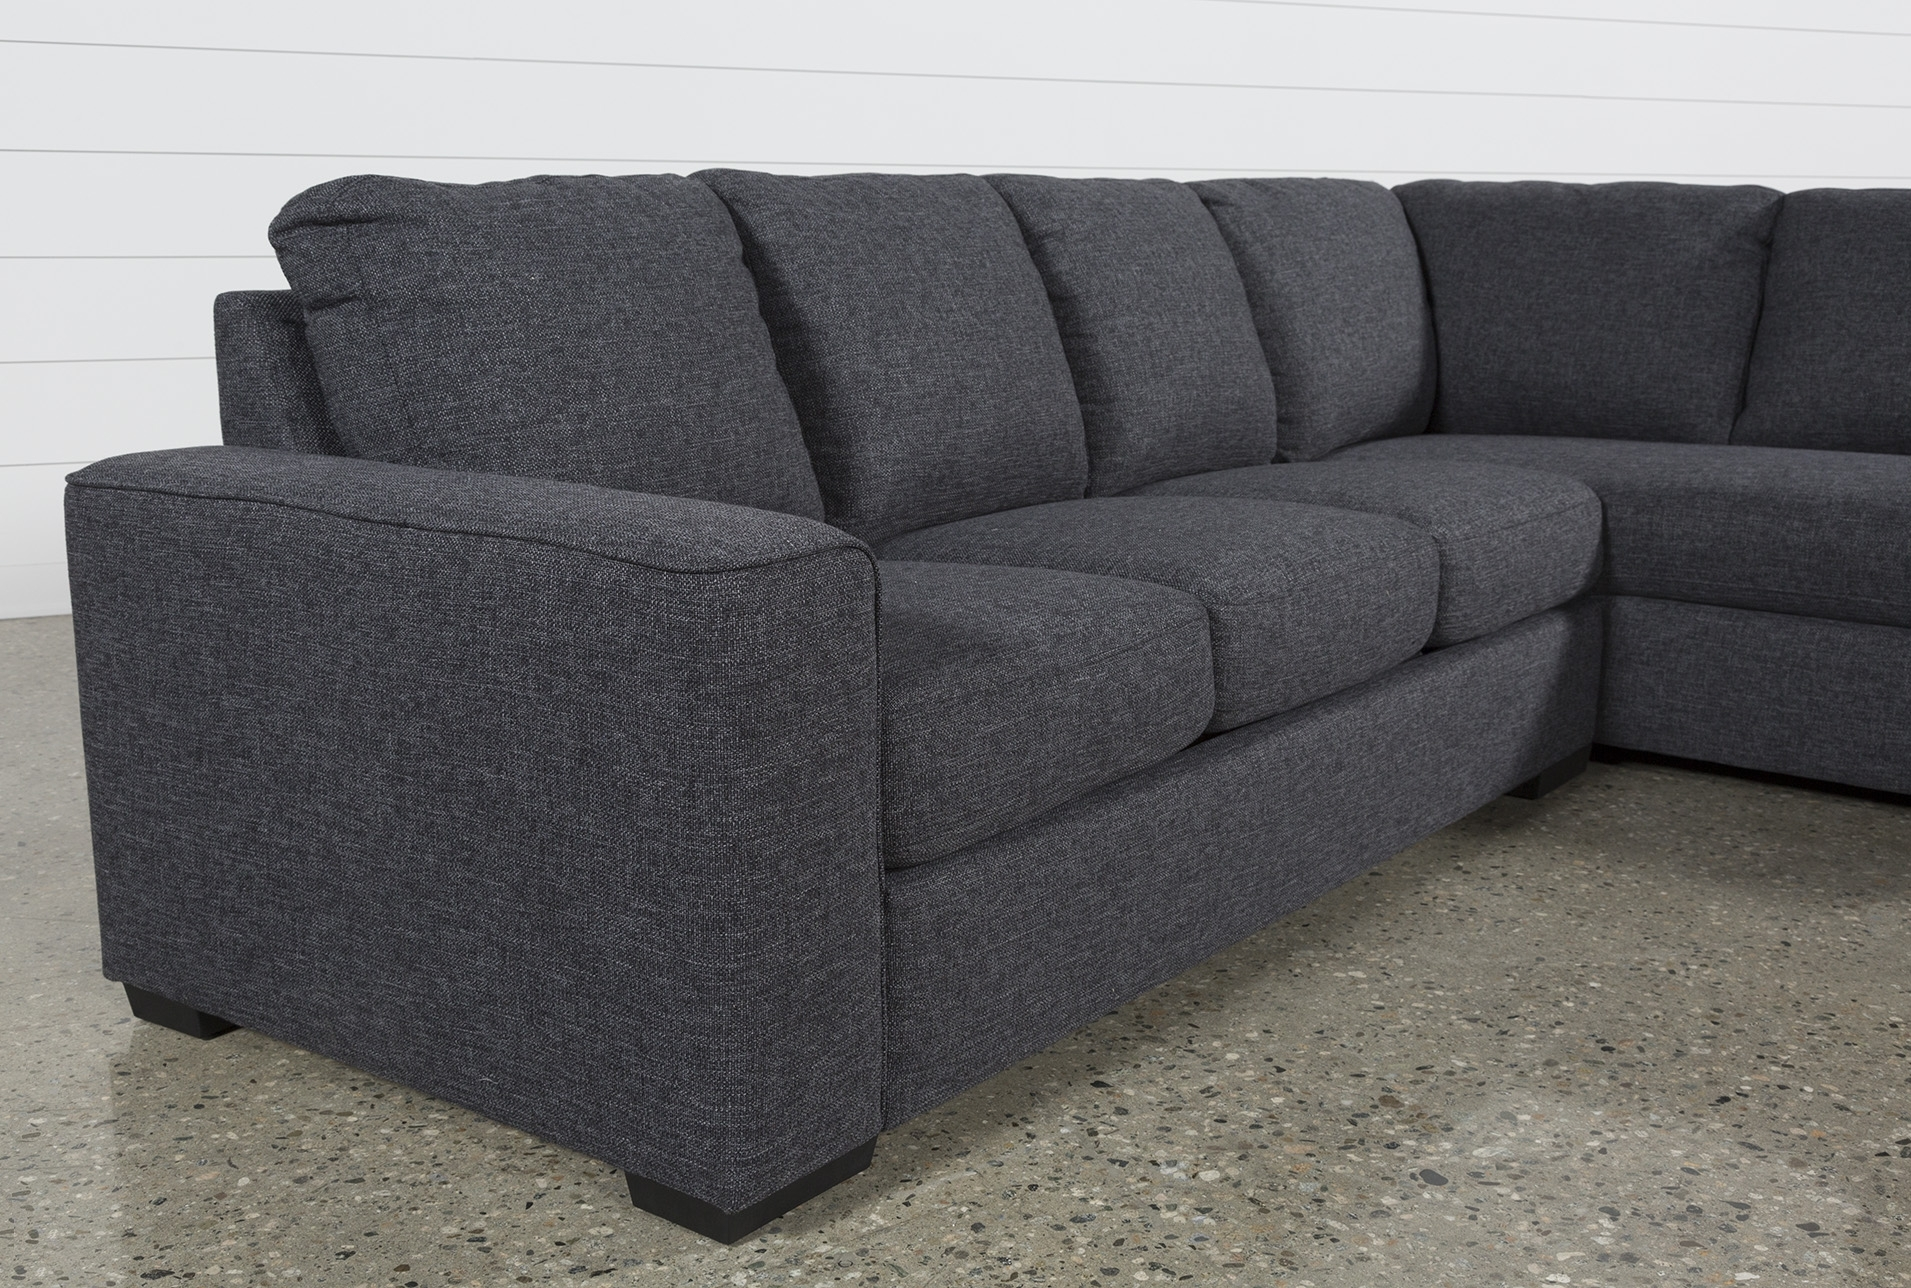 Lucy Dark Grey 2 Piece Sectional W/raf Chaise | Pinterest | Dark With Lucy Dark Grey 2 Piece Sleeper Sectionals With Raf Chaise (View 3 of 25)